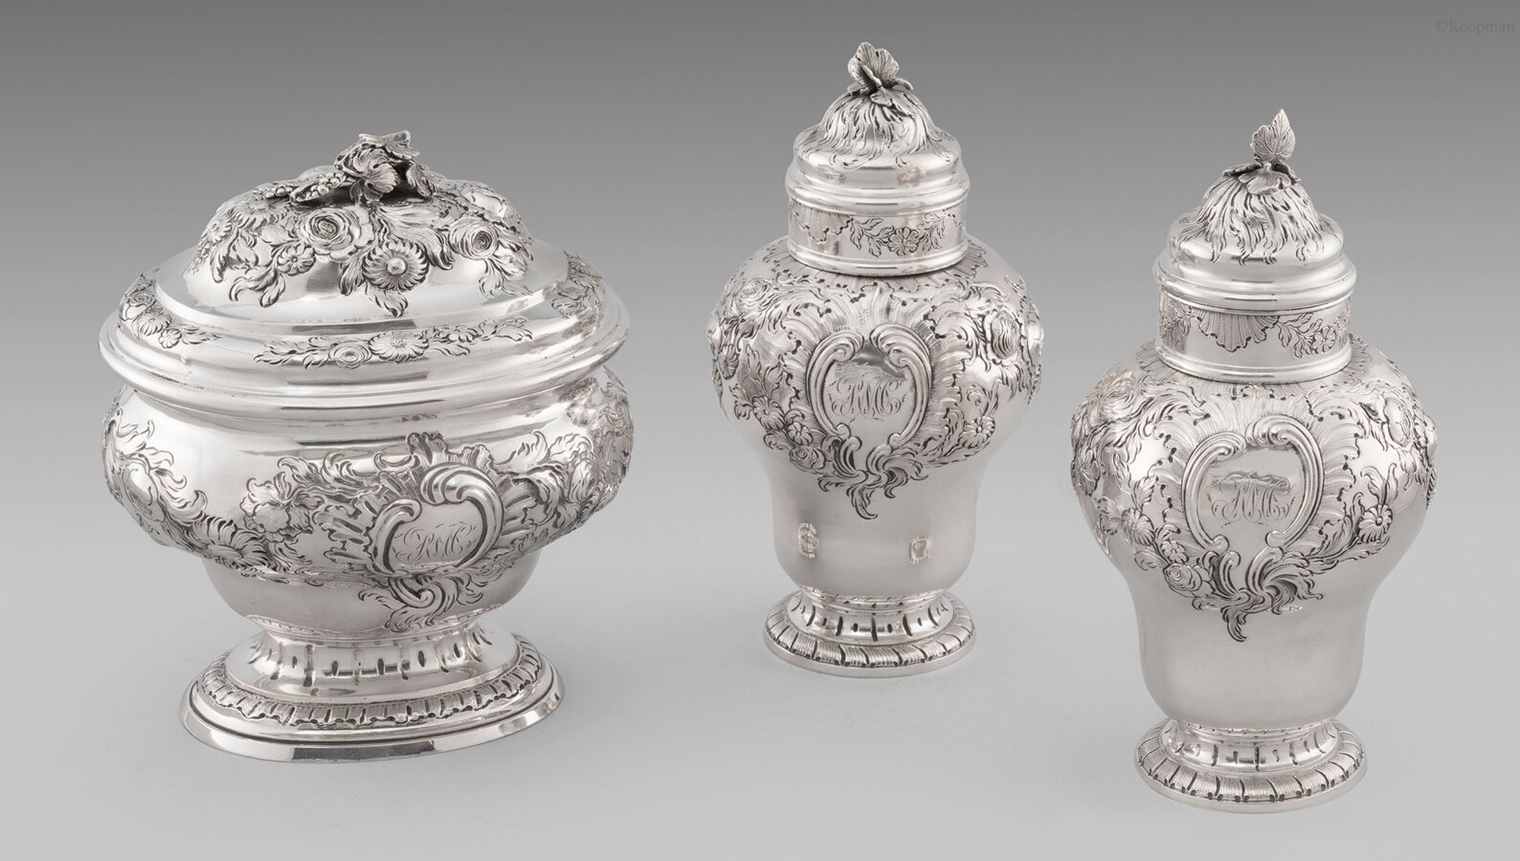 A set of Three George II Tea Caddies in a Fitted Box